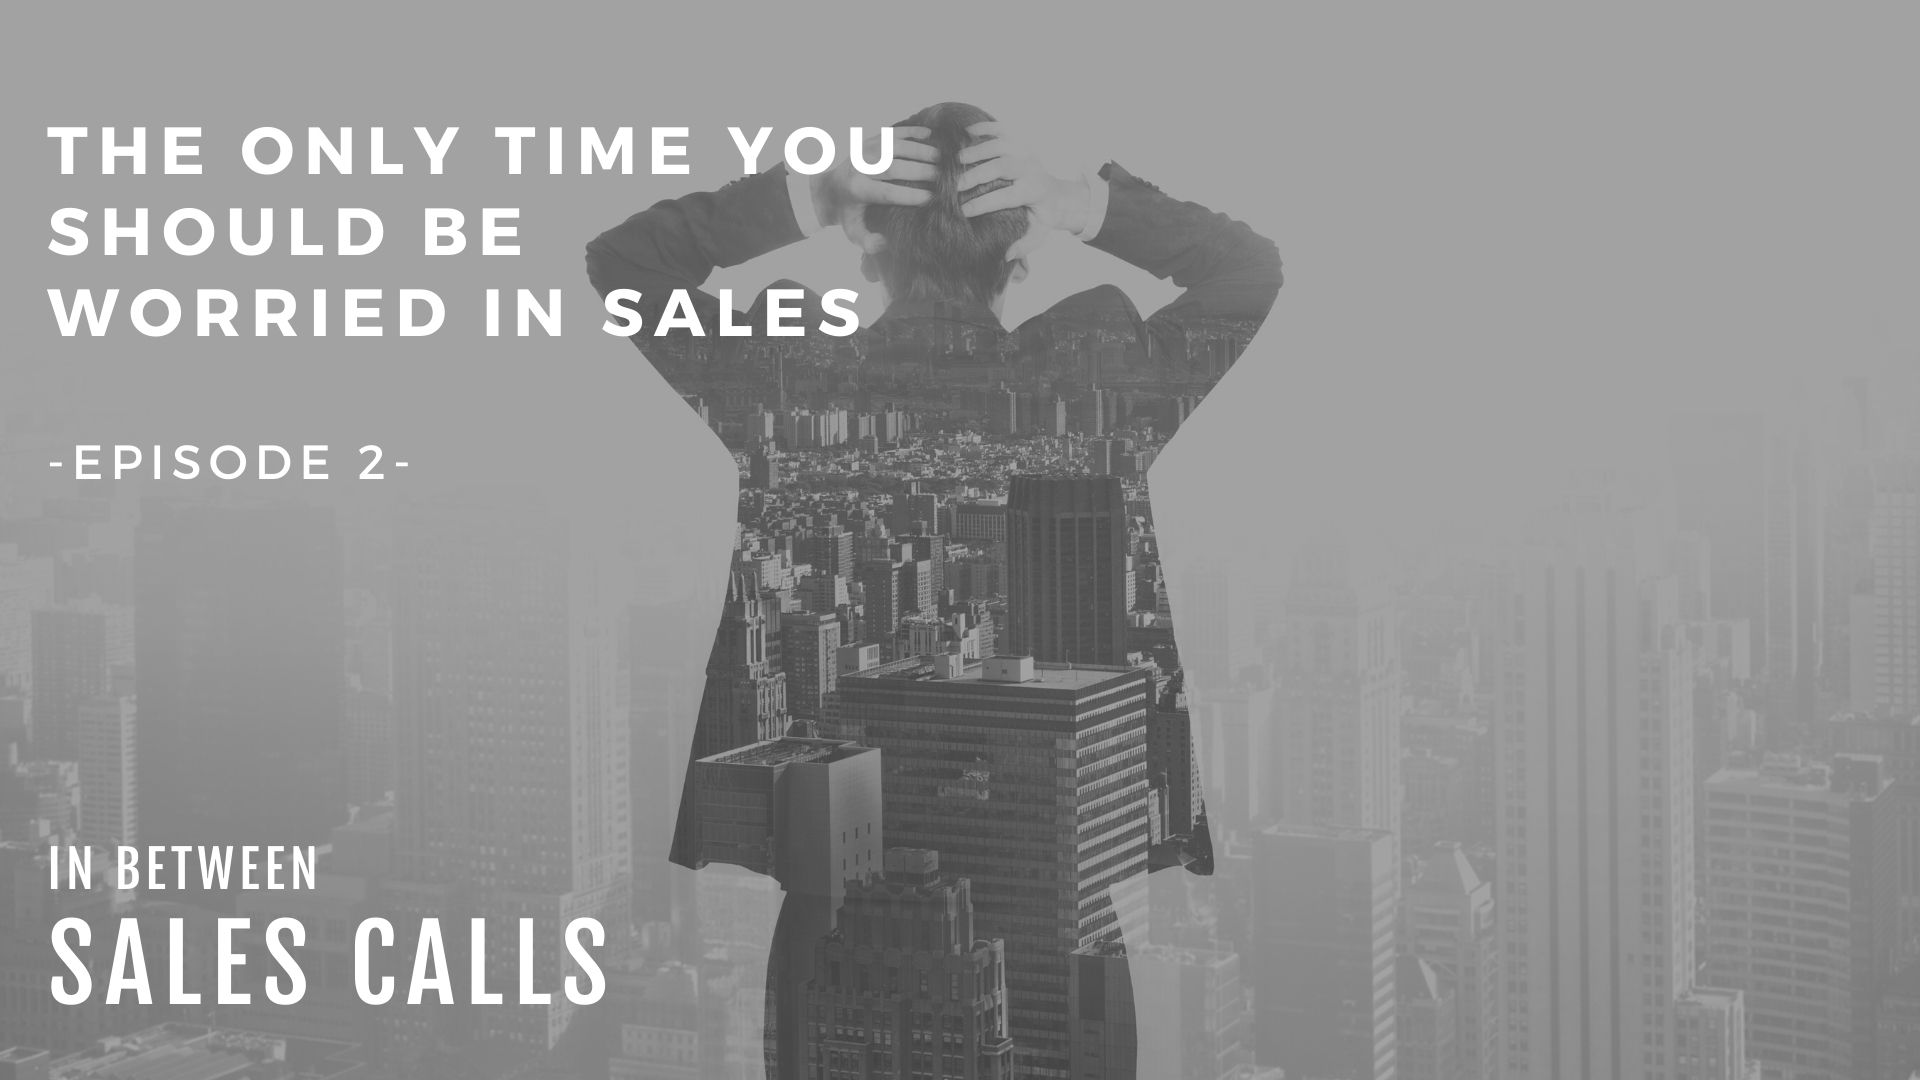 the-only-time-you-should-be-worried-in-sales-modern-sales-training-in-between-sales-calls-podcast